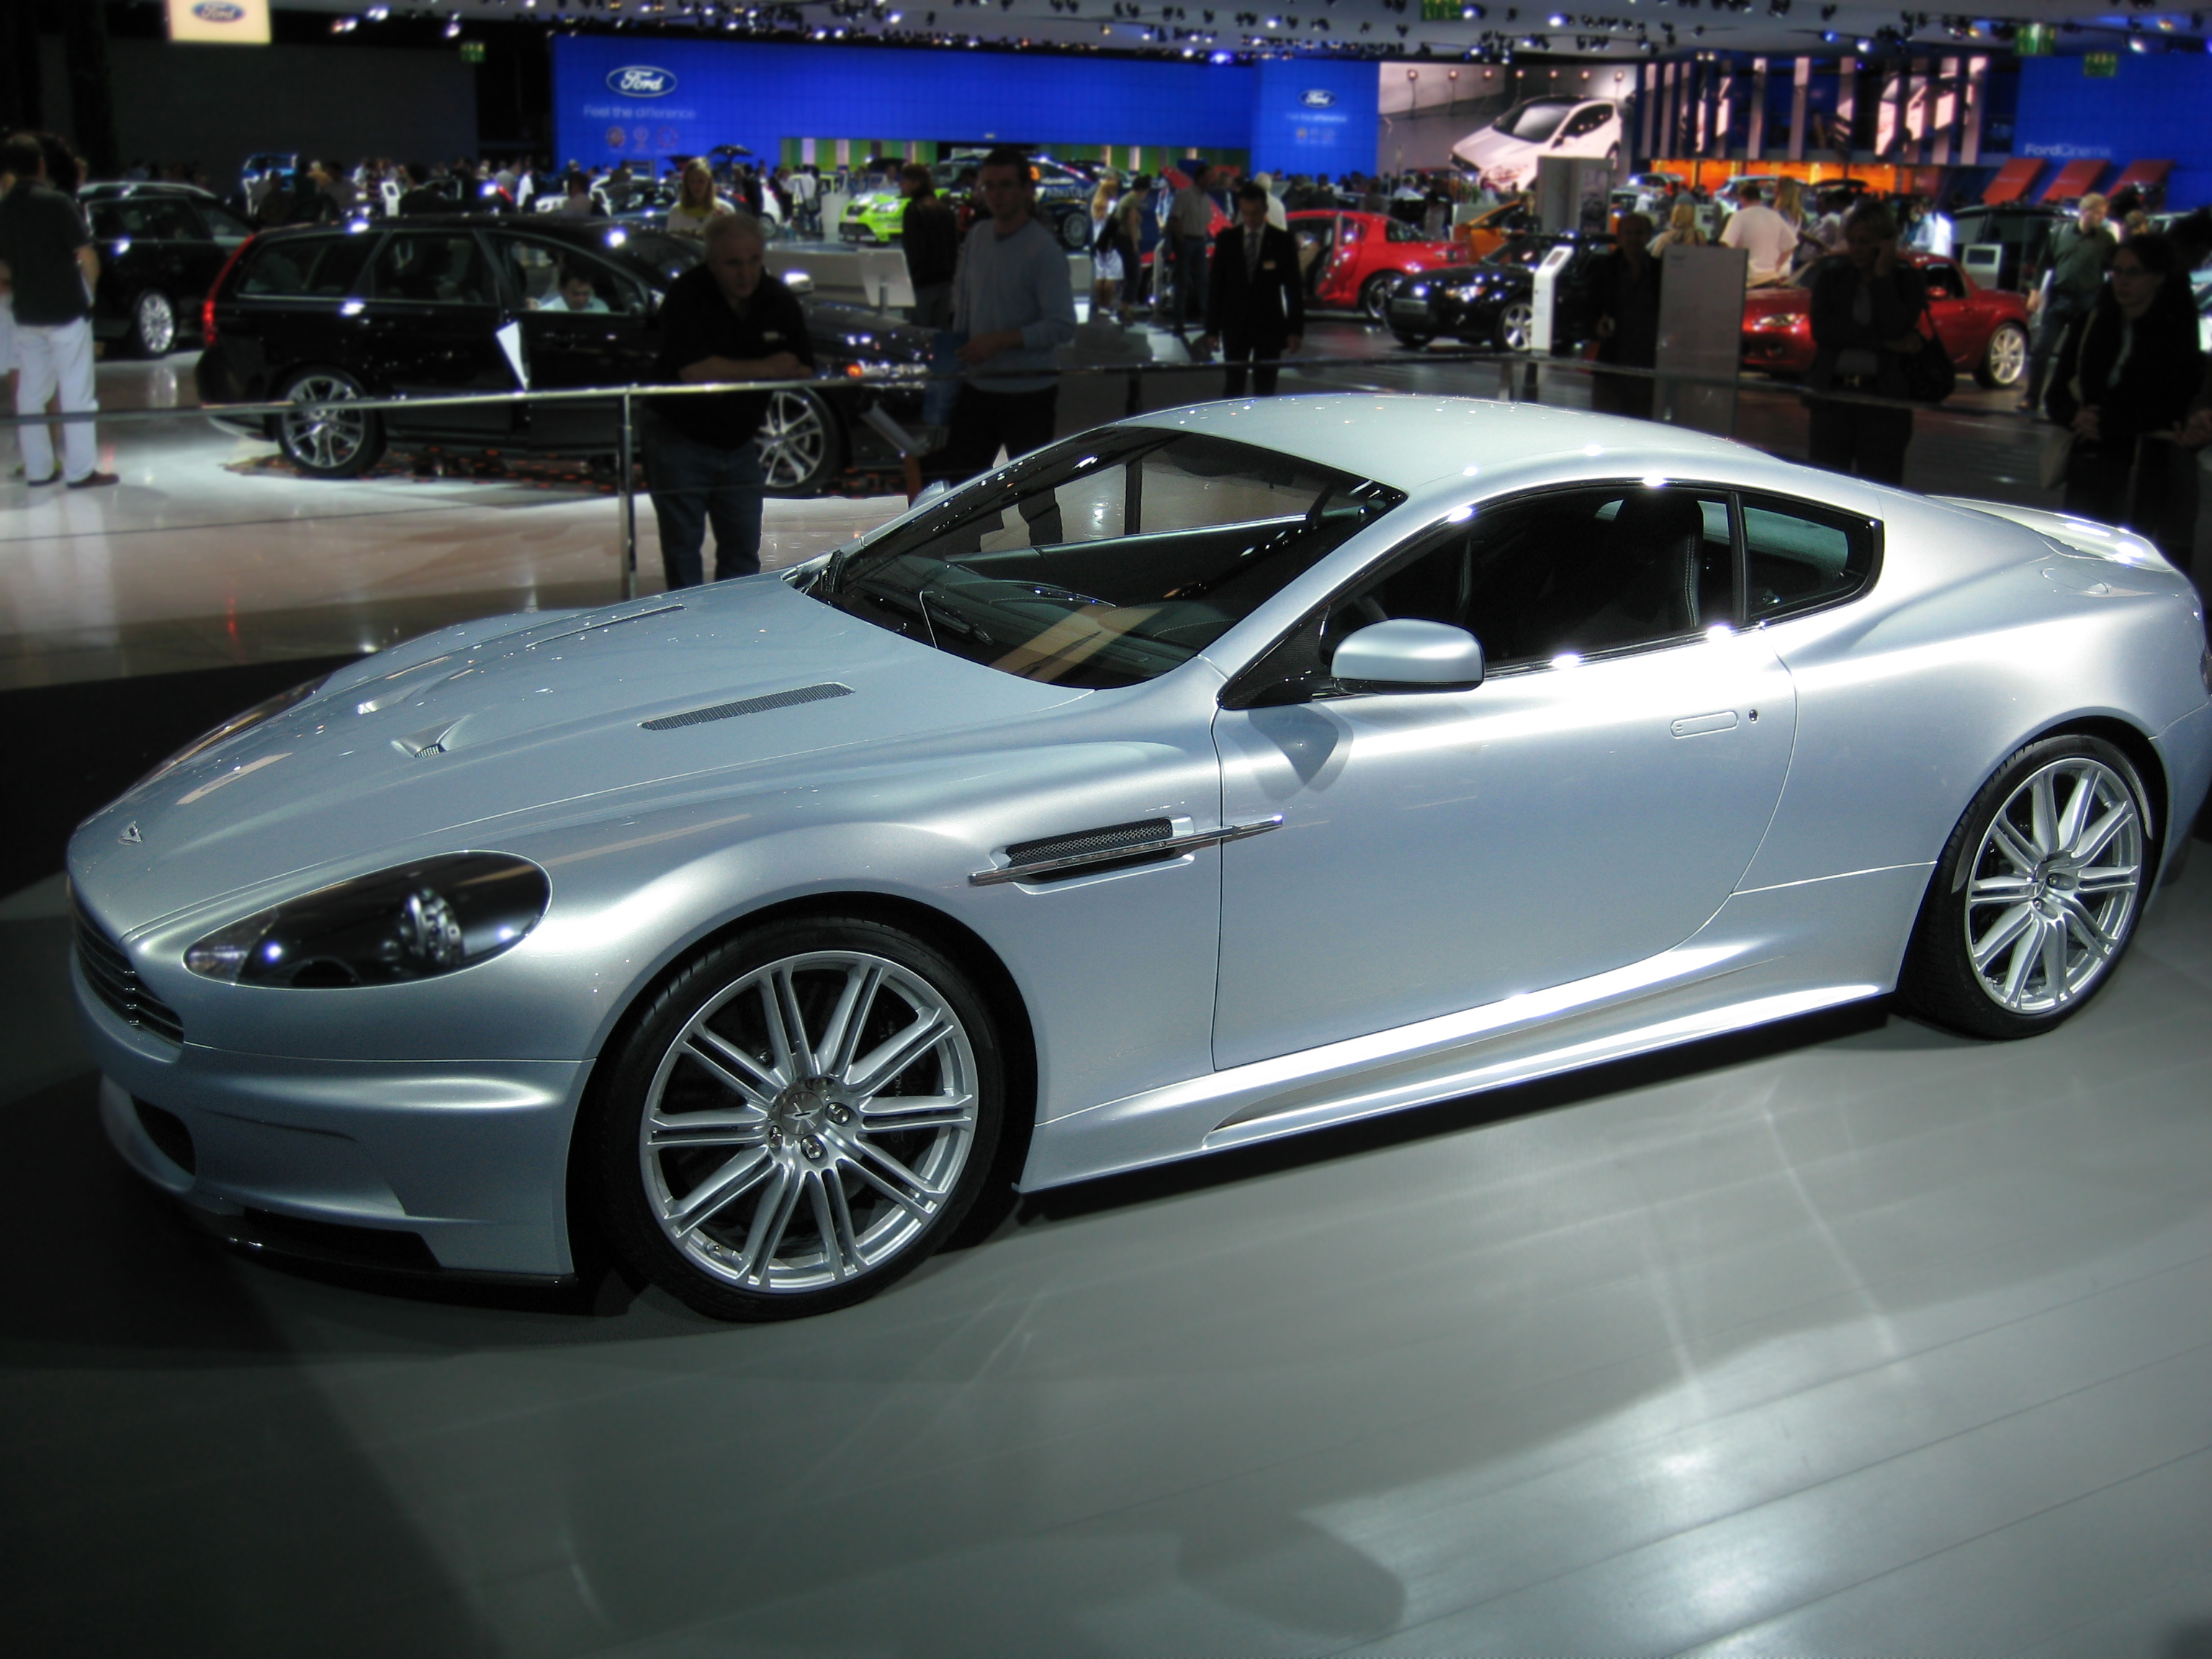 file aston martin dbs wikimedia commons. Black Bedroom Furniture Sets. Home Design Ideas